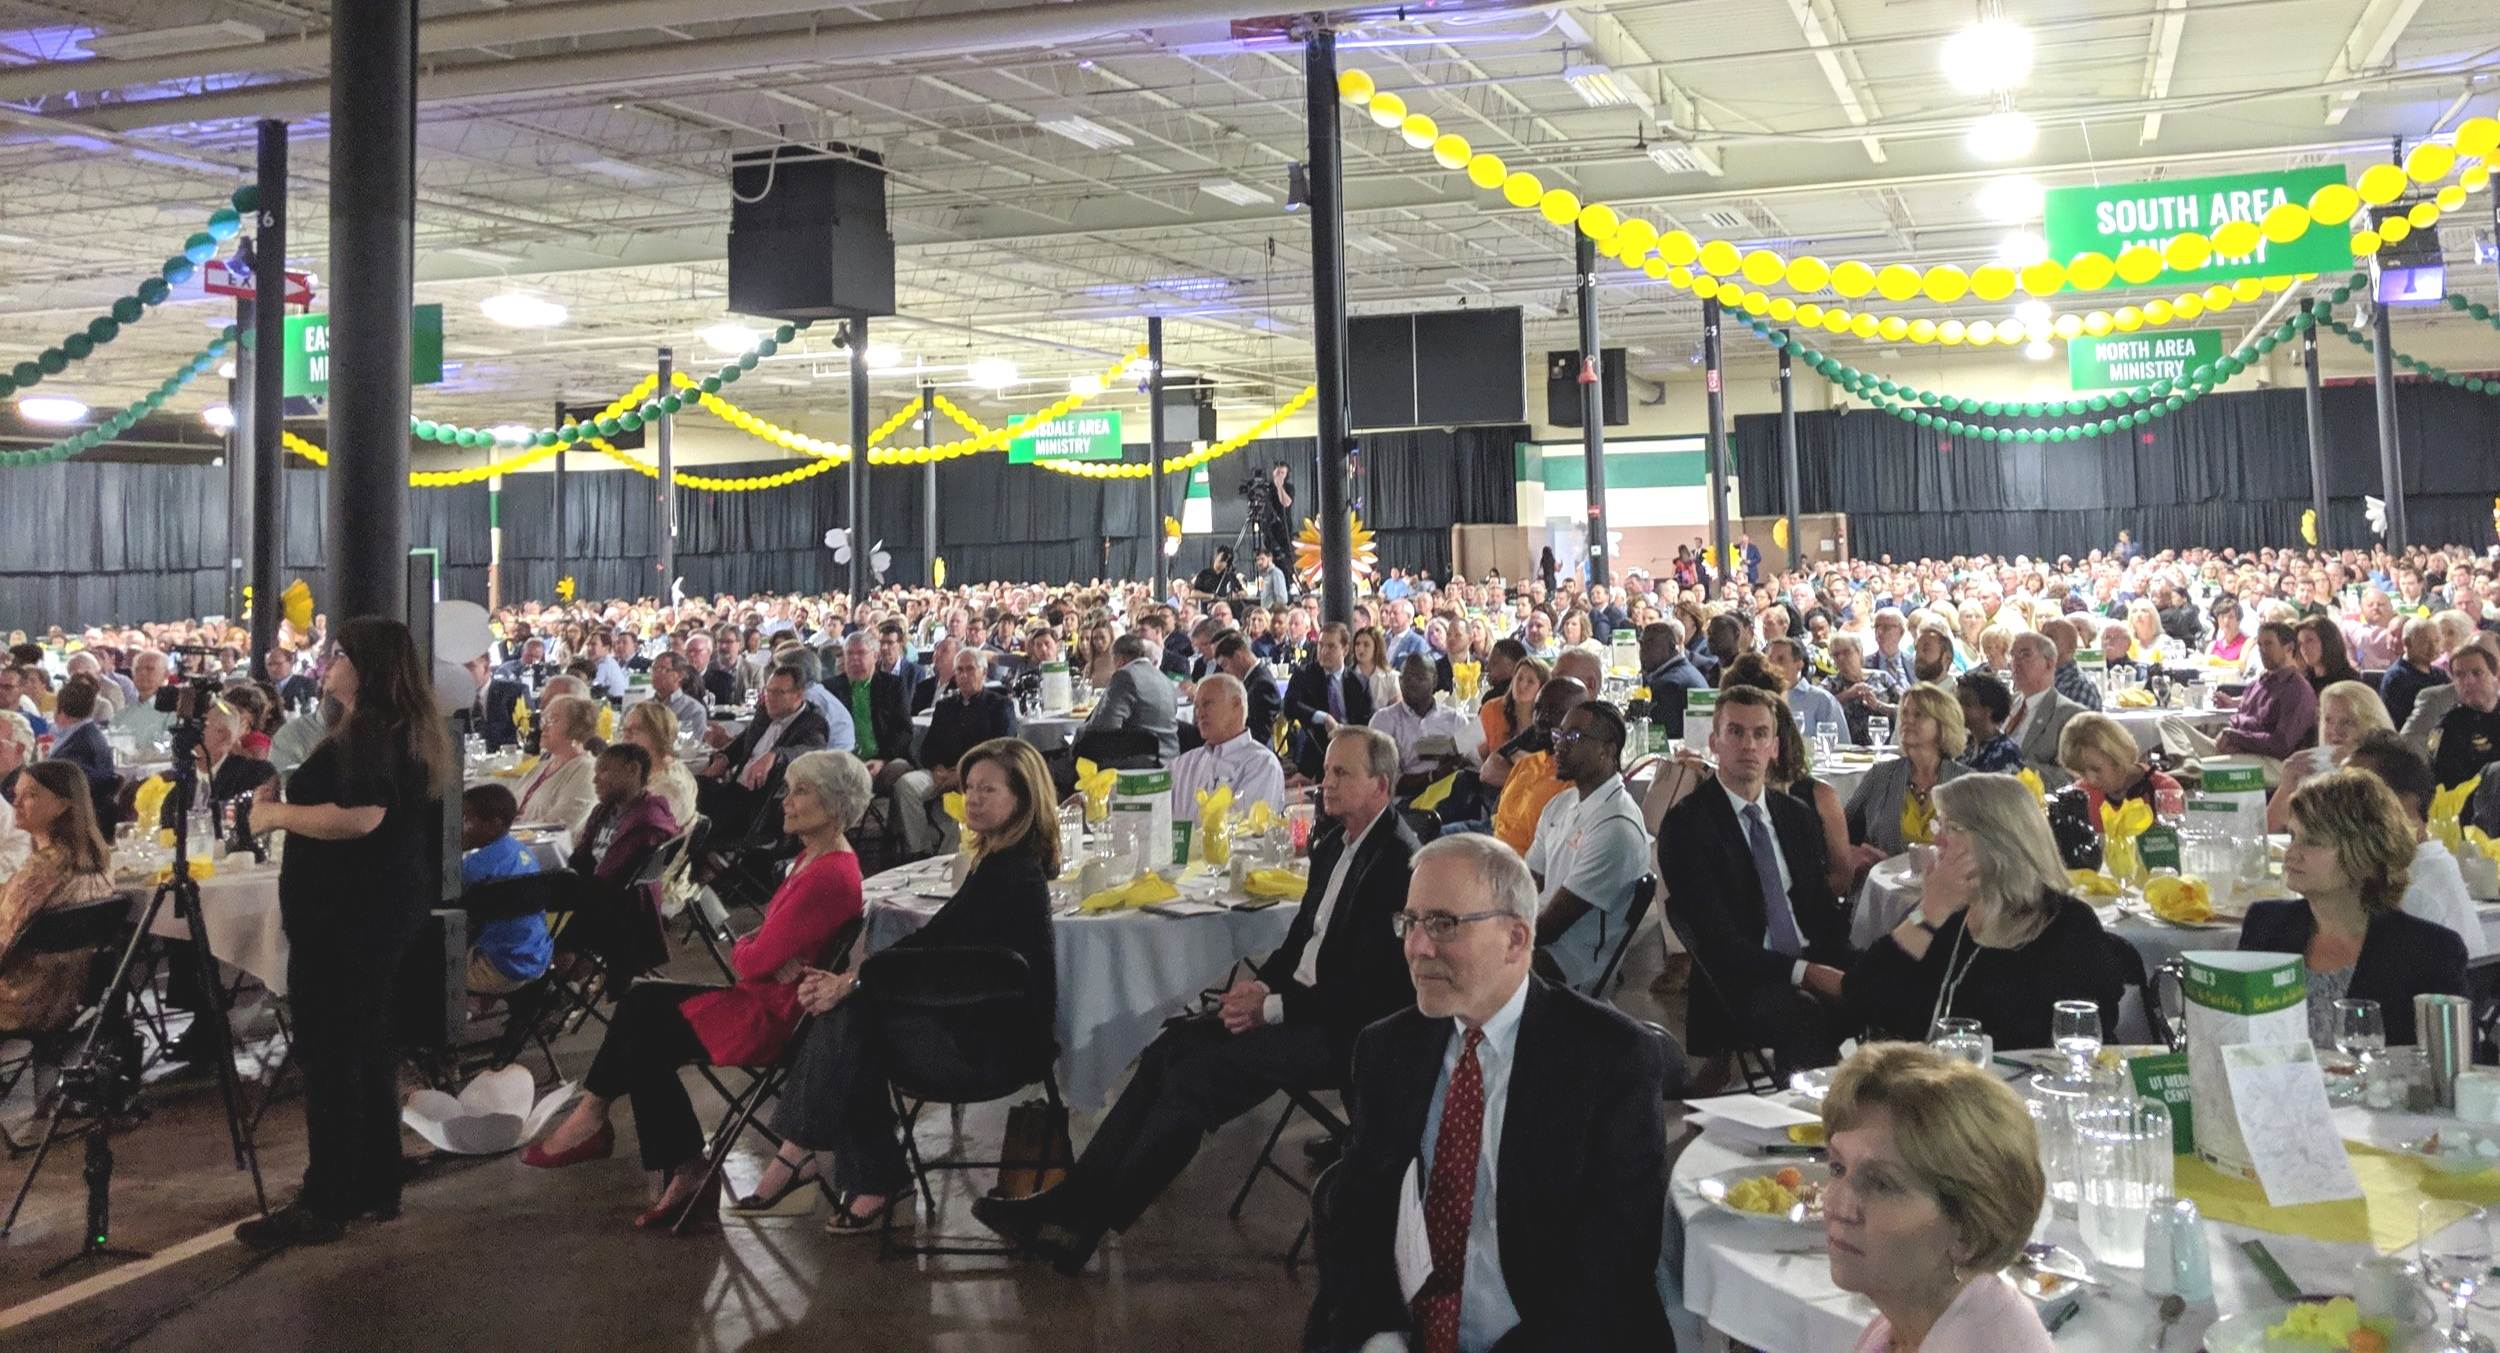 Nearly 1,900 guests attended the Emerald Youth Breakfast at the Knoxville Expo Center on May 3 and heard about the Health Center to open in Lonsdale.